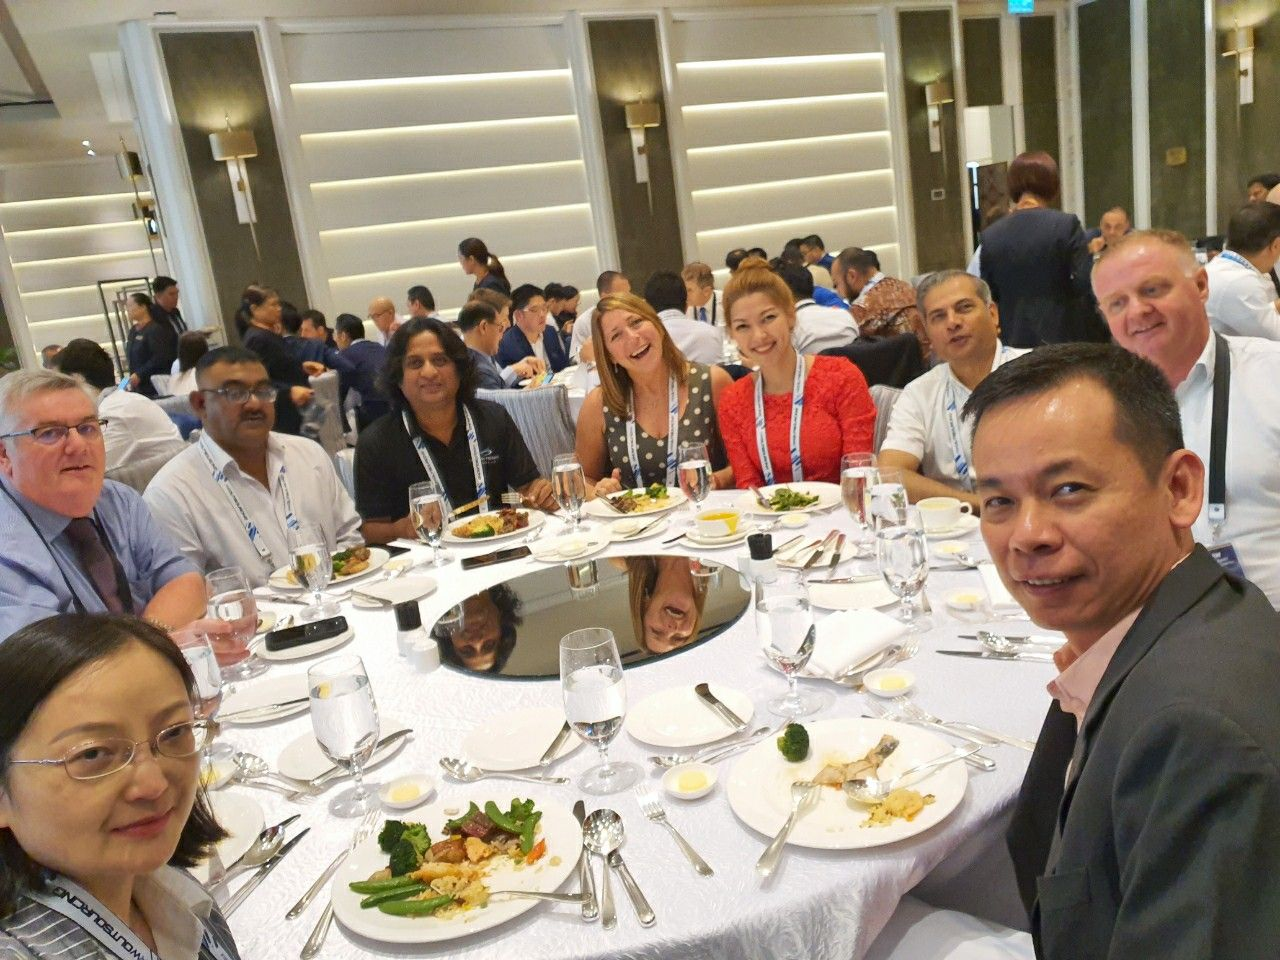 Lunch networking with me.. the woman in red🤝😁👄  #LanWork #FreightForwarder #TSLNaxco #TFS #TheFreightSummit #MacauTrip #LanInMacau #Macau